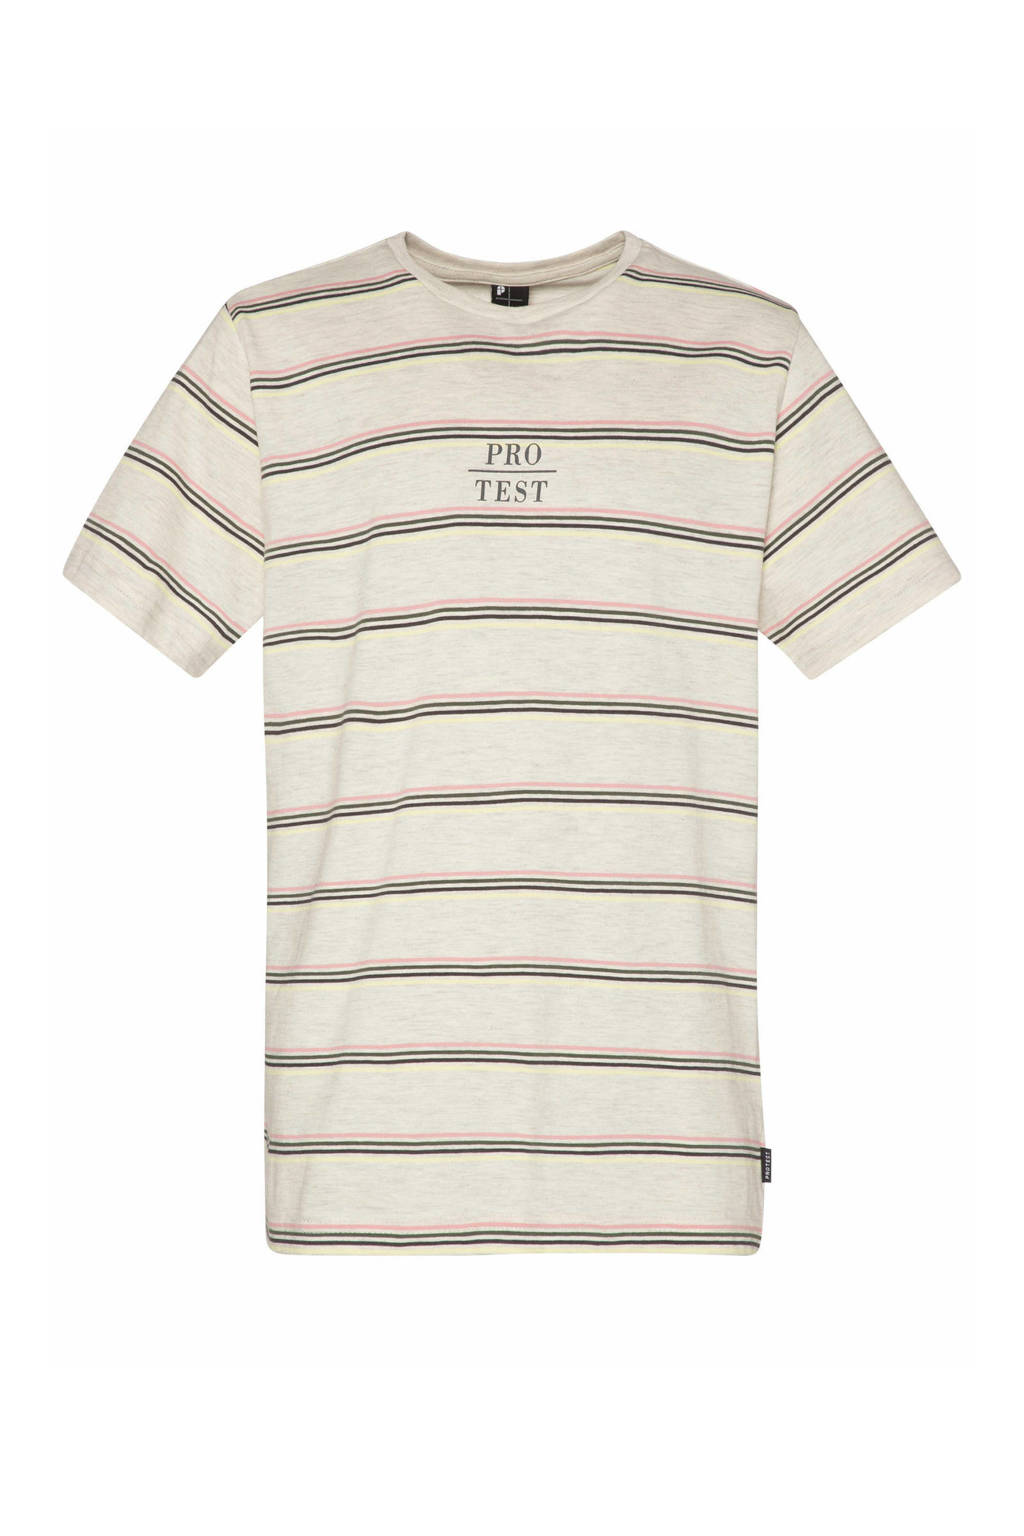 Protest T-shirt Thijs off-white/beige, Kit